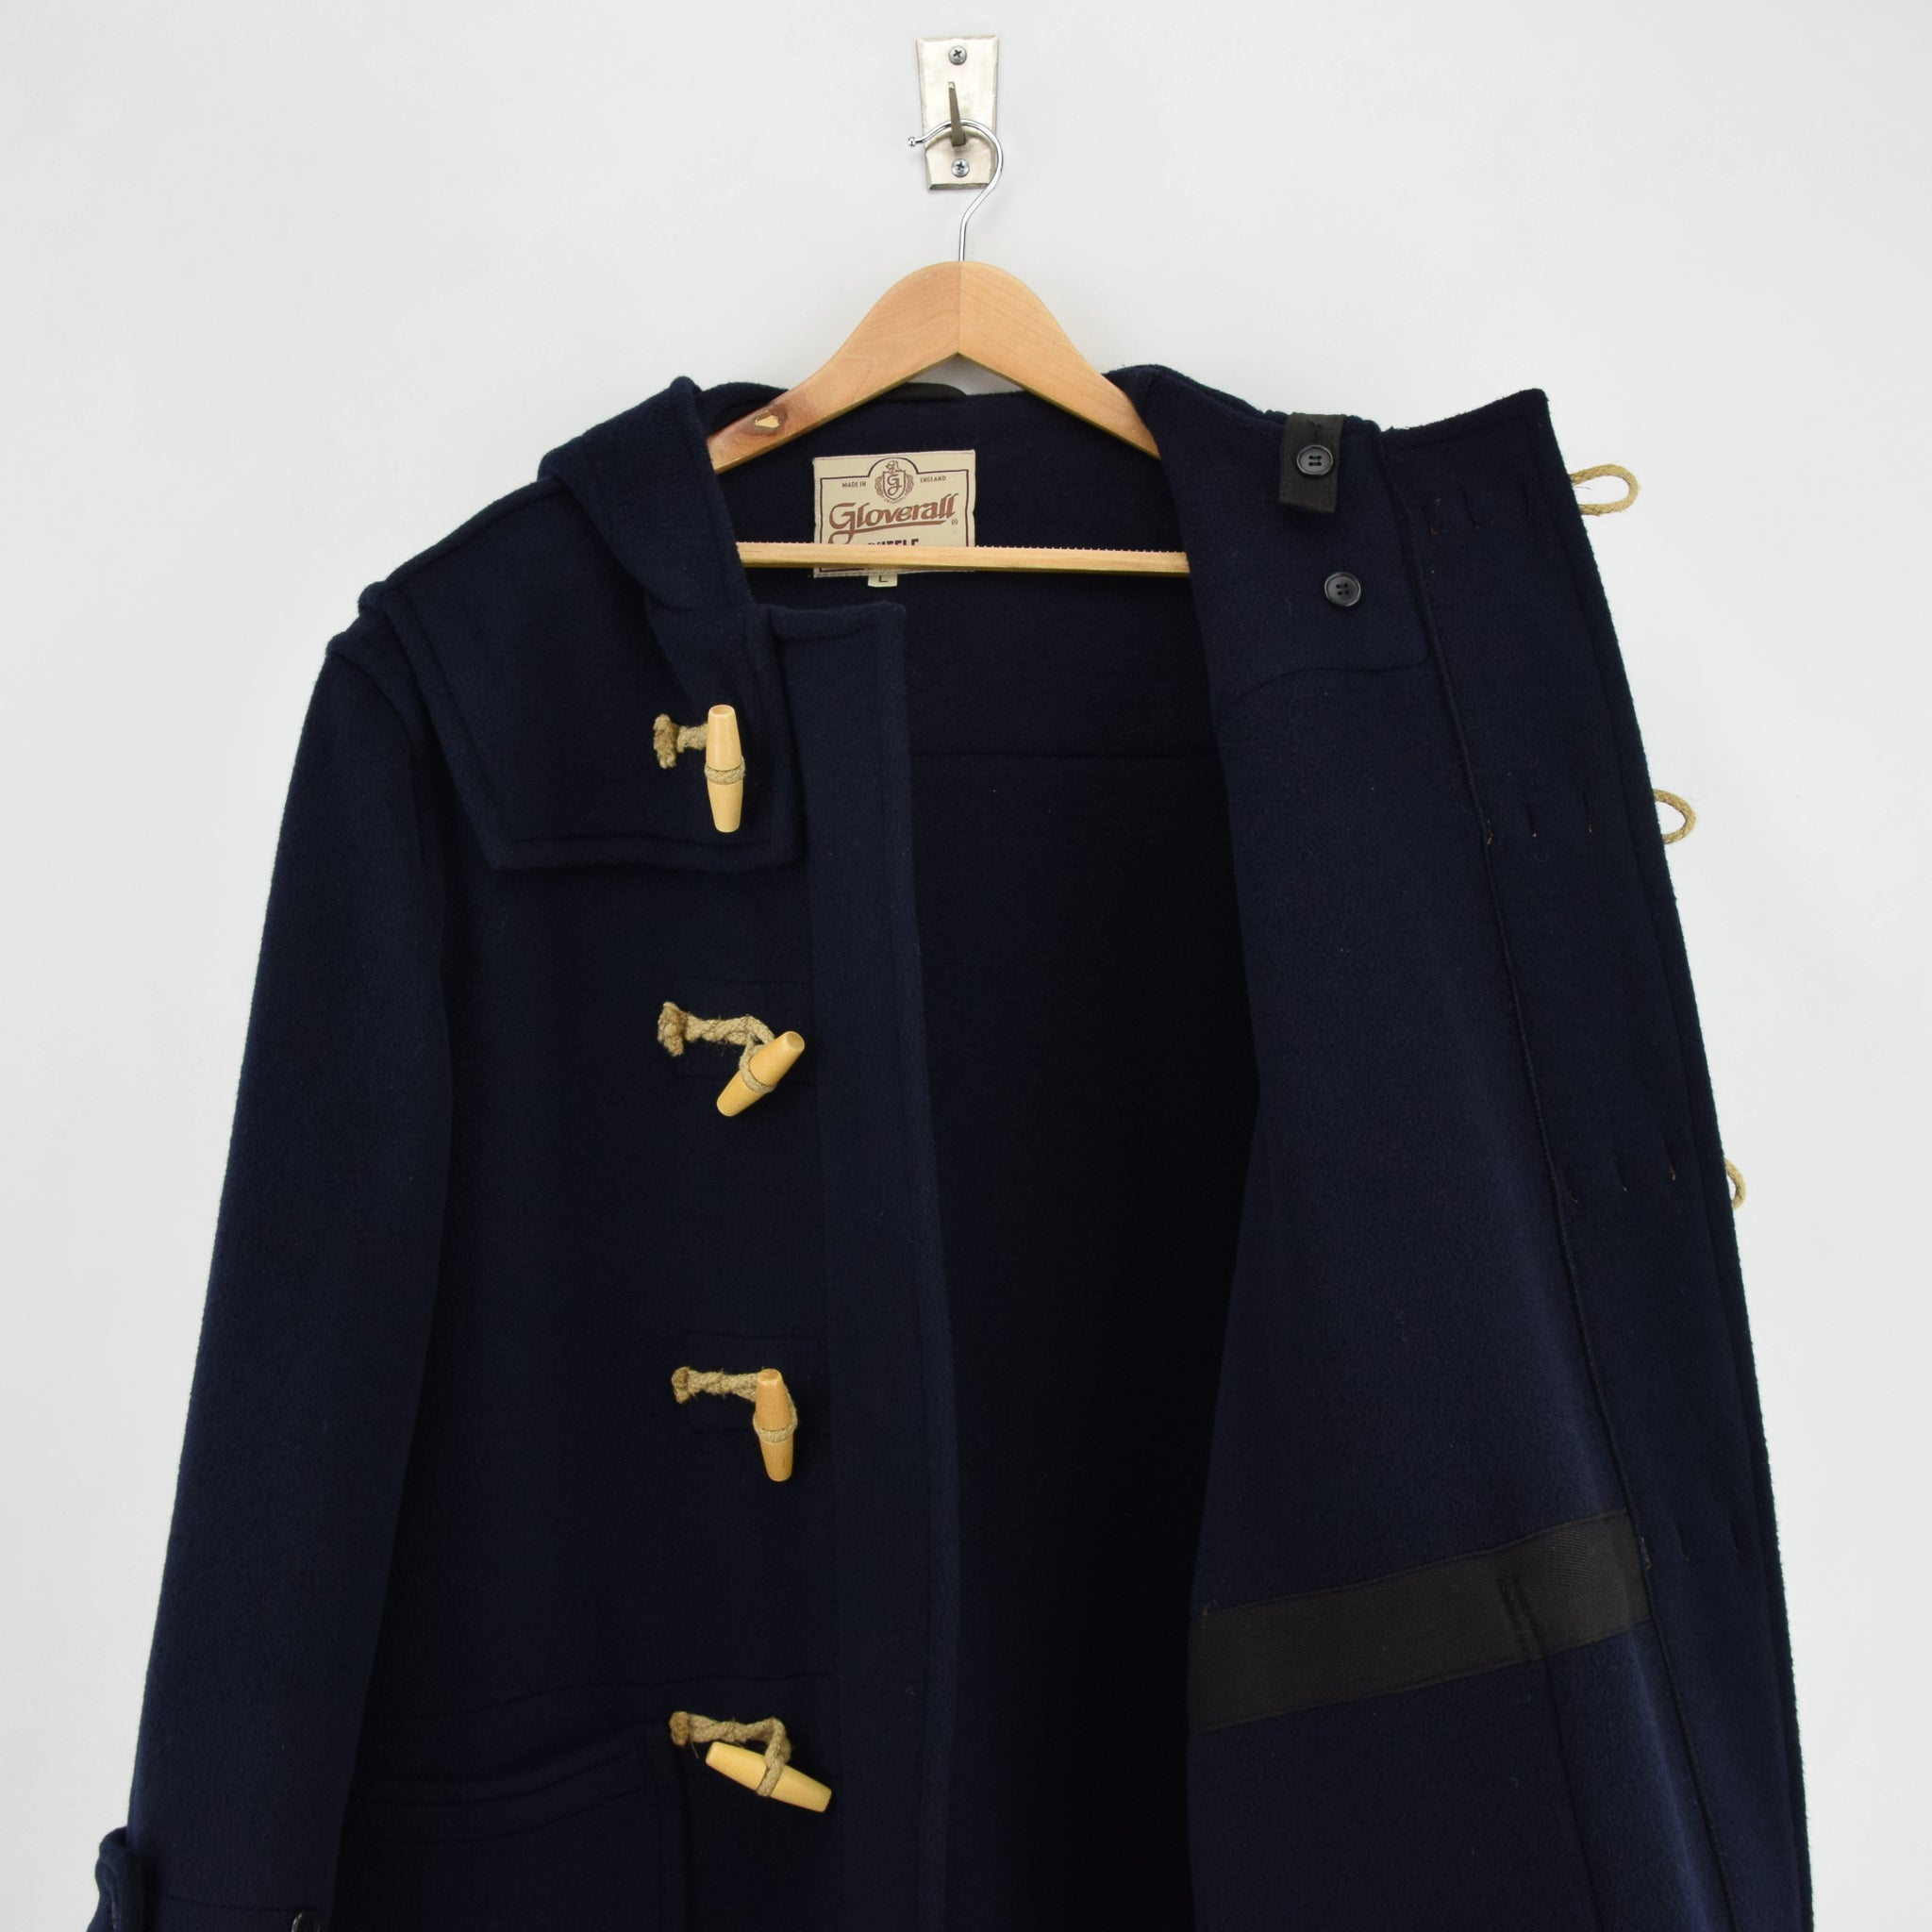 Vintage Gloverall Navy Blue Hooded Duffle Coat Jacket Made in England L / XL lining